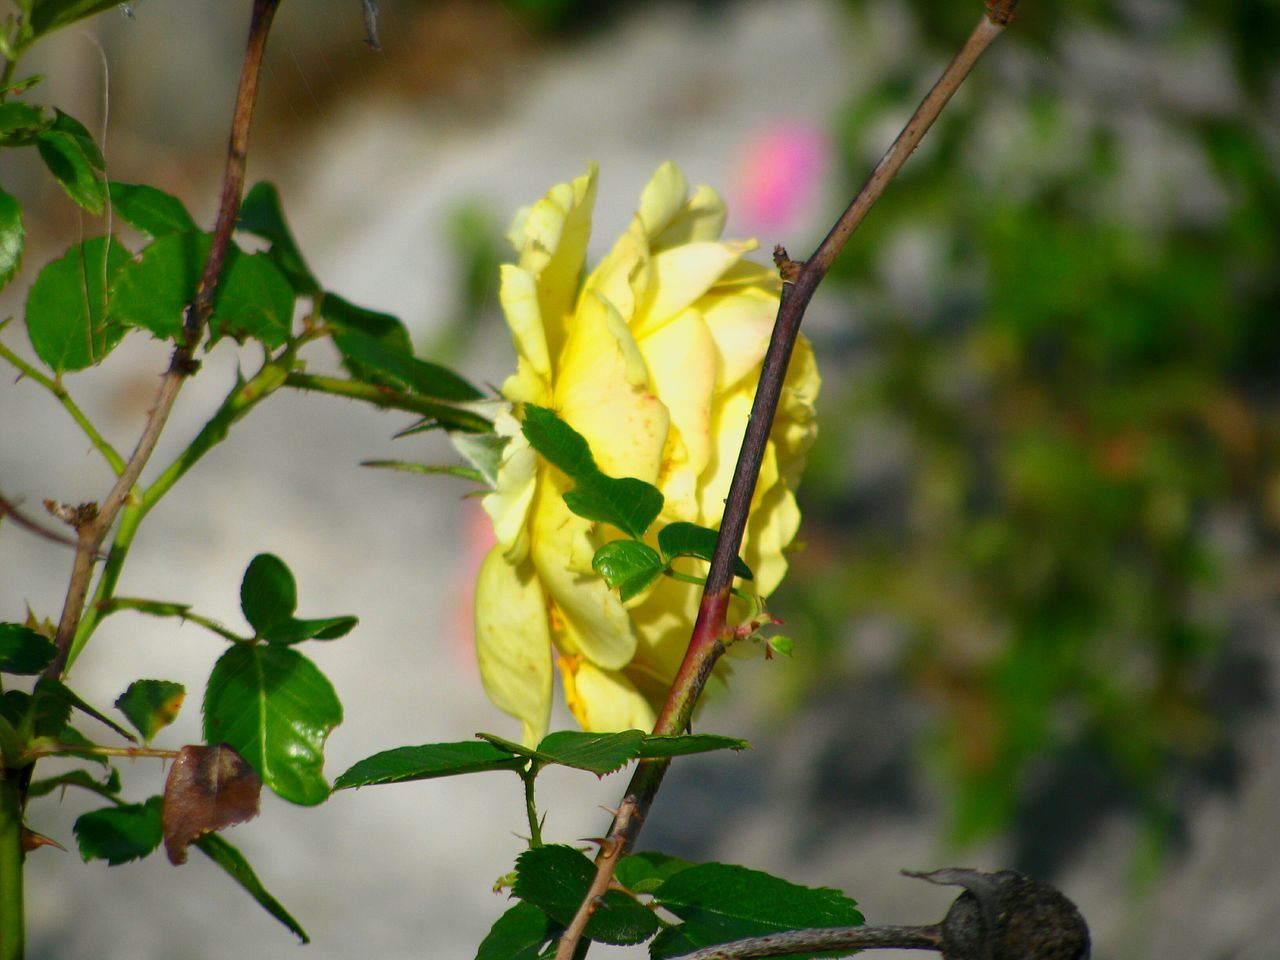 Rosé Roses Yellow Yellow Rose Flower Flowers Flower Head Flower Photography Yellow Flower Leaf Plant Nature Branch Freshness Beauty In Nature Leaves Green Leaves Tree Branches Garden Garden Photography Urban Gardening Art Is Everywhere TCPM